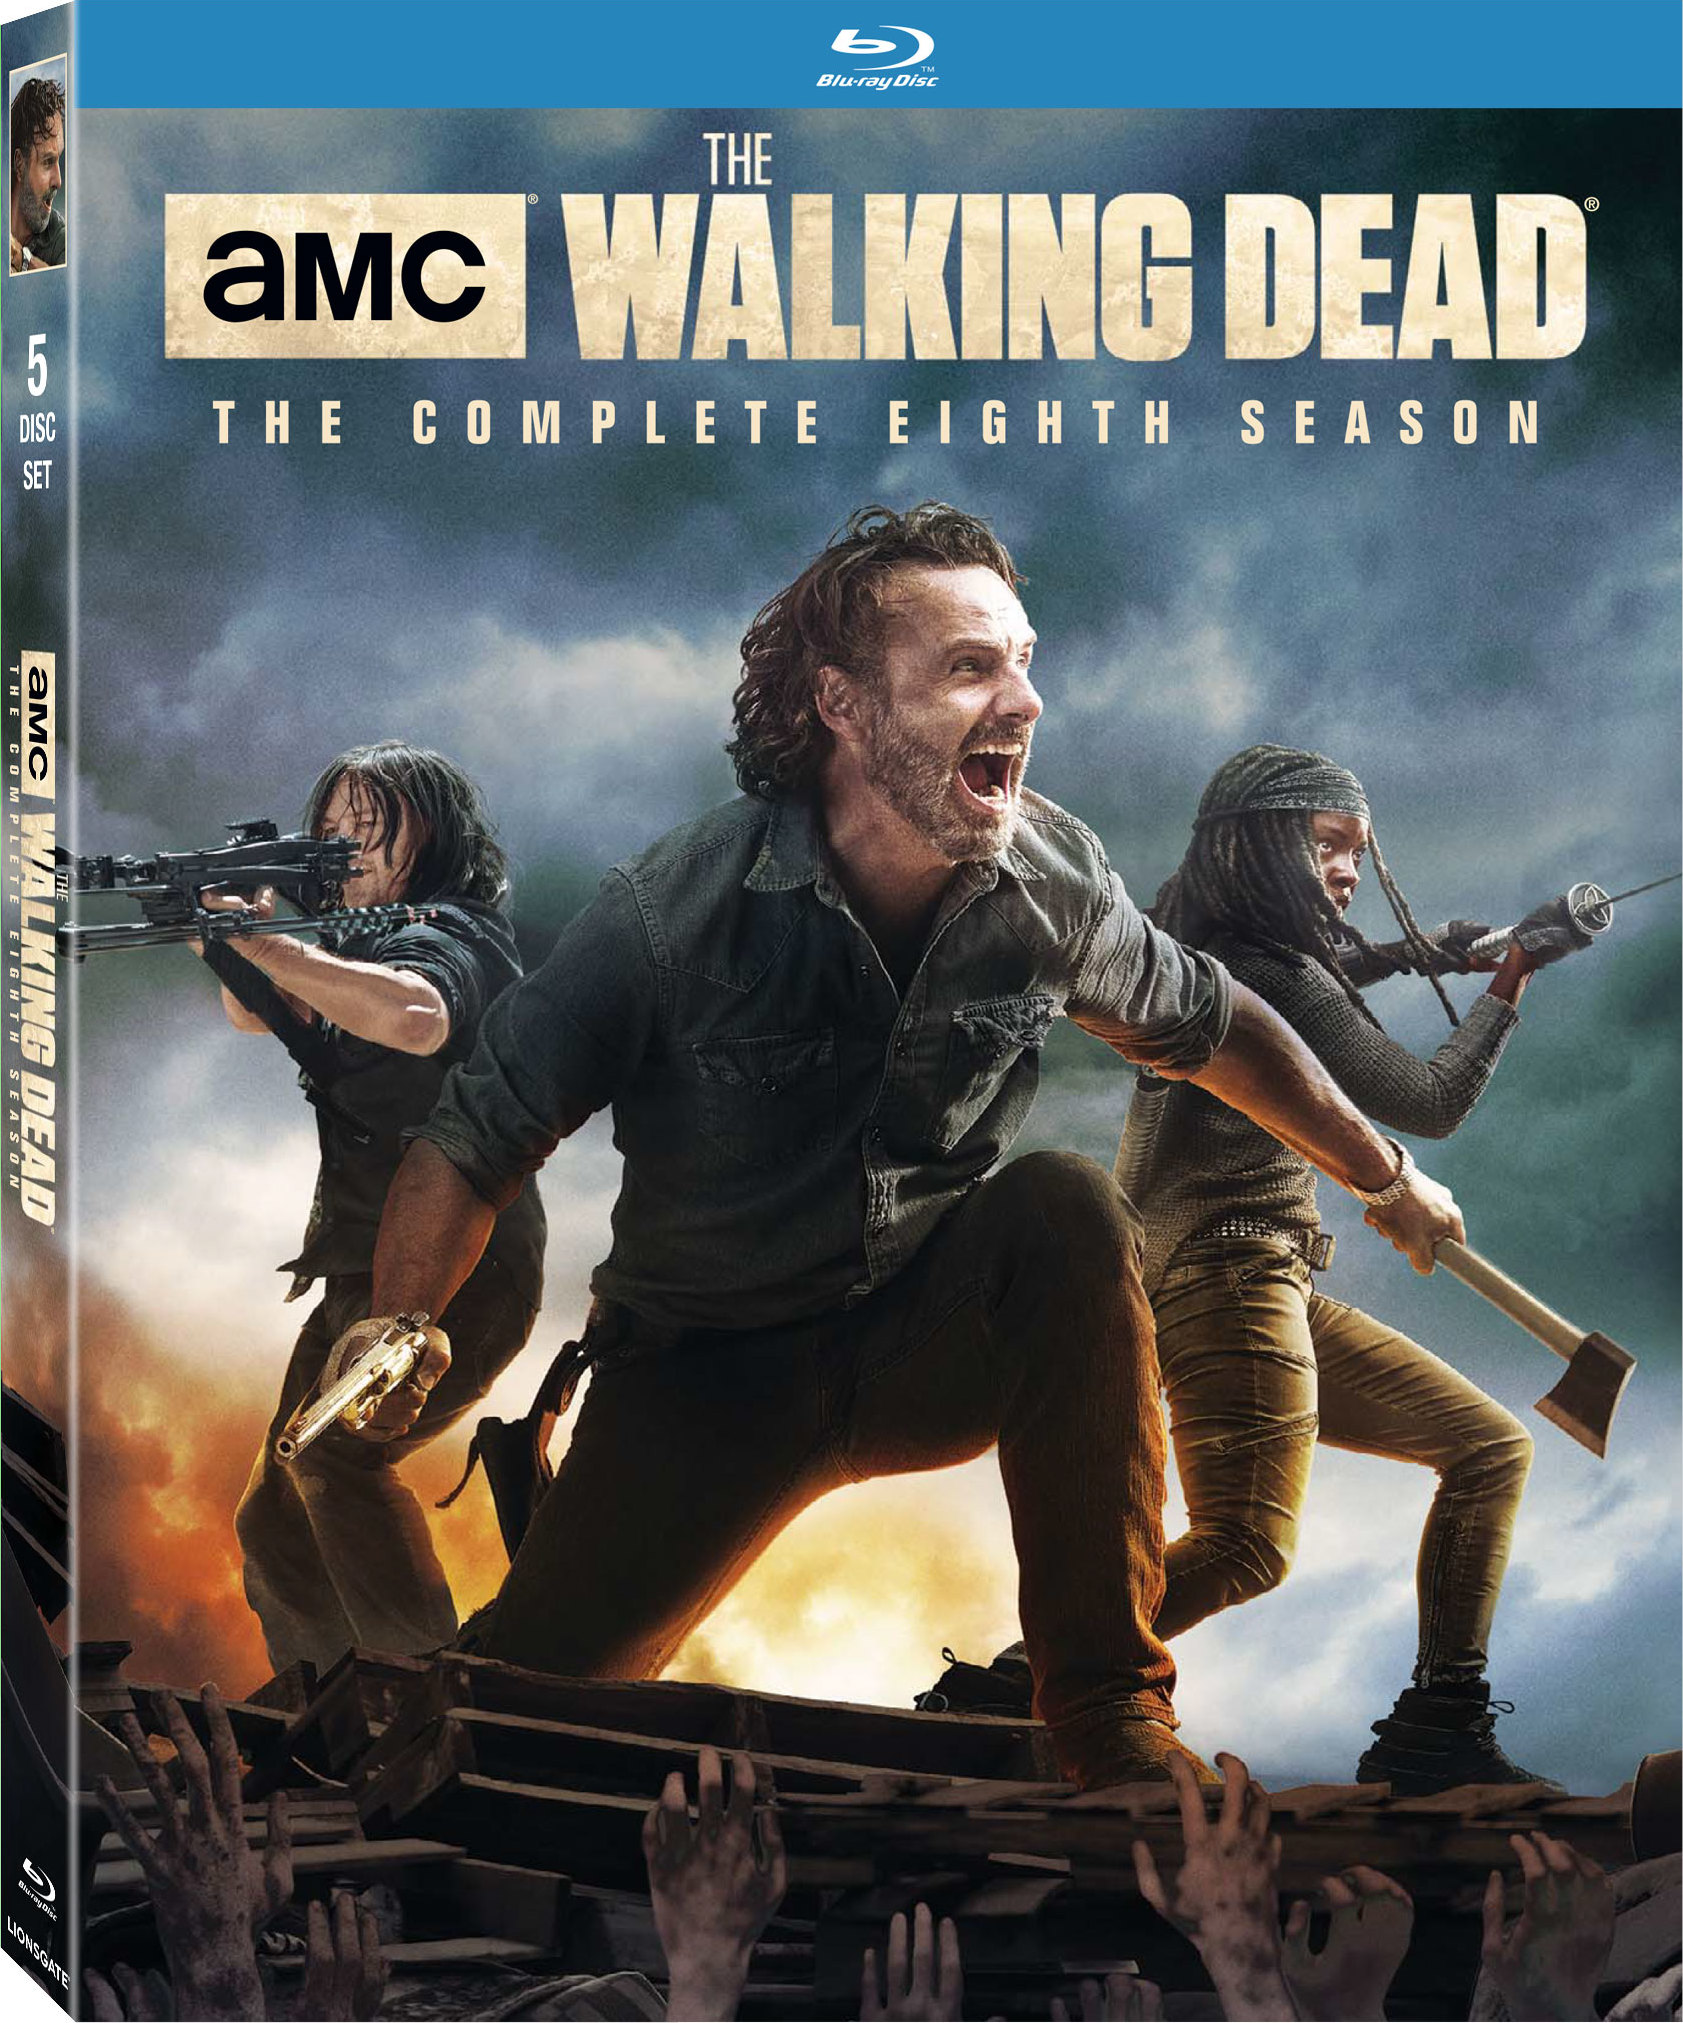 The Walking Dead: The Complete Eighth Season Blu-ray